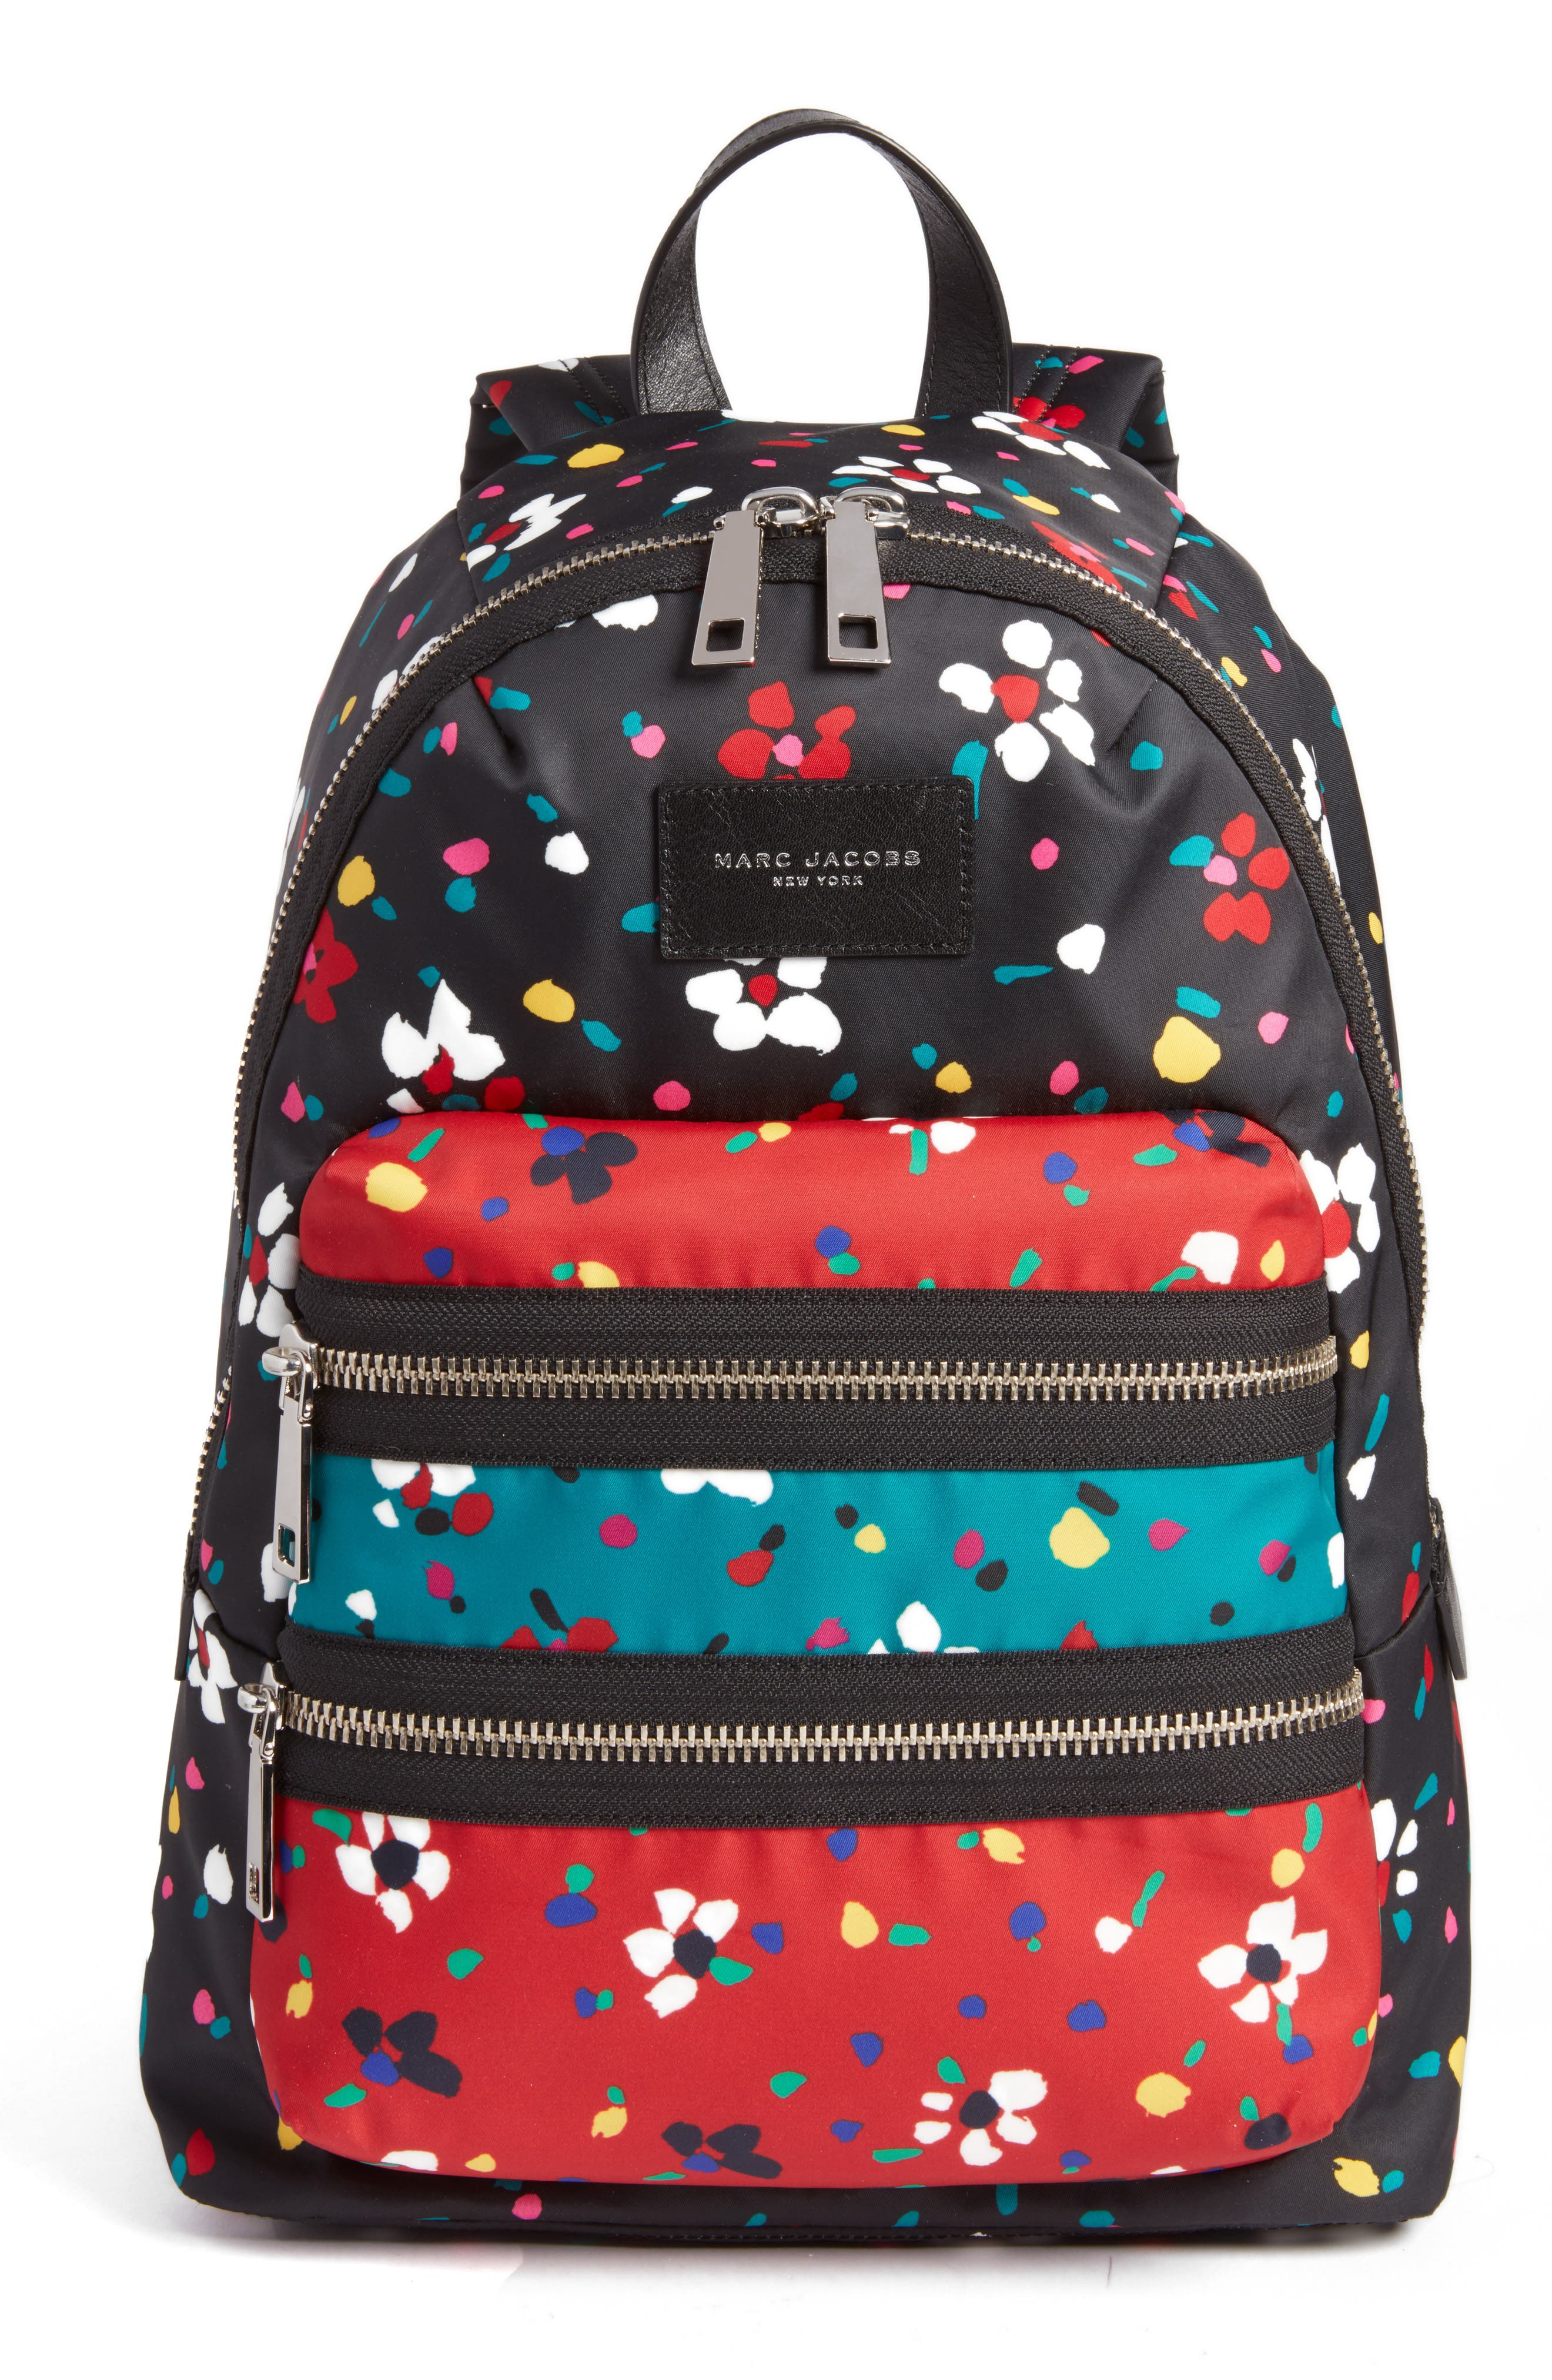 MARC JACOBS Biker Floral Print Backpack